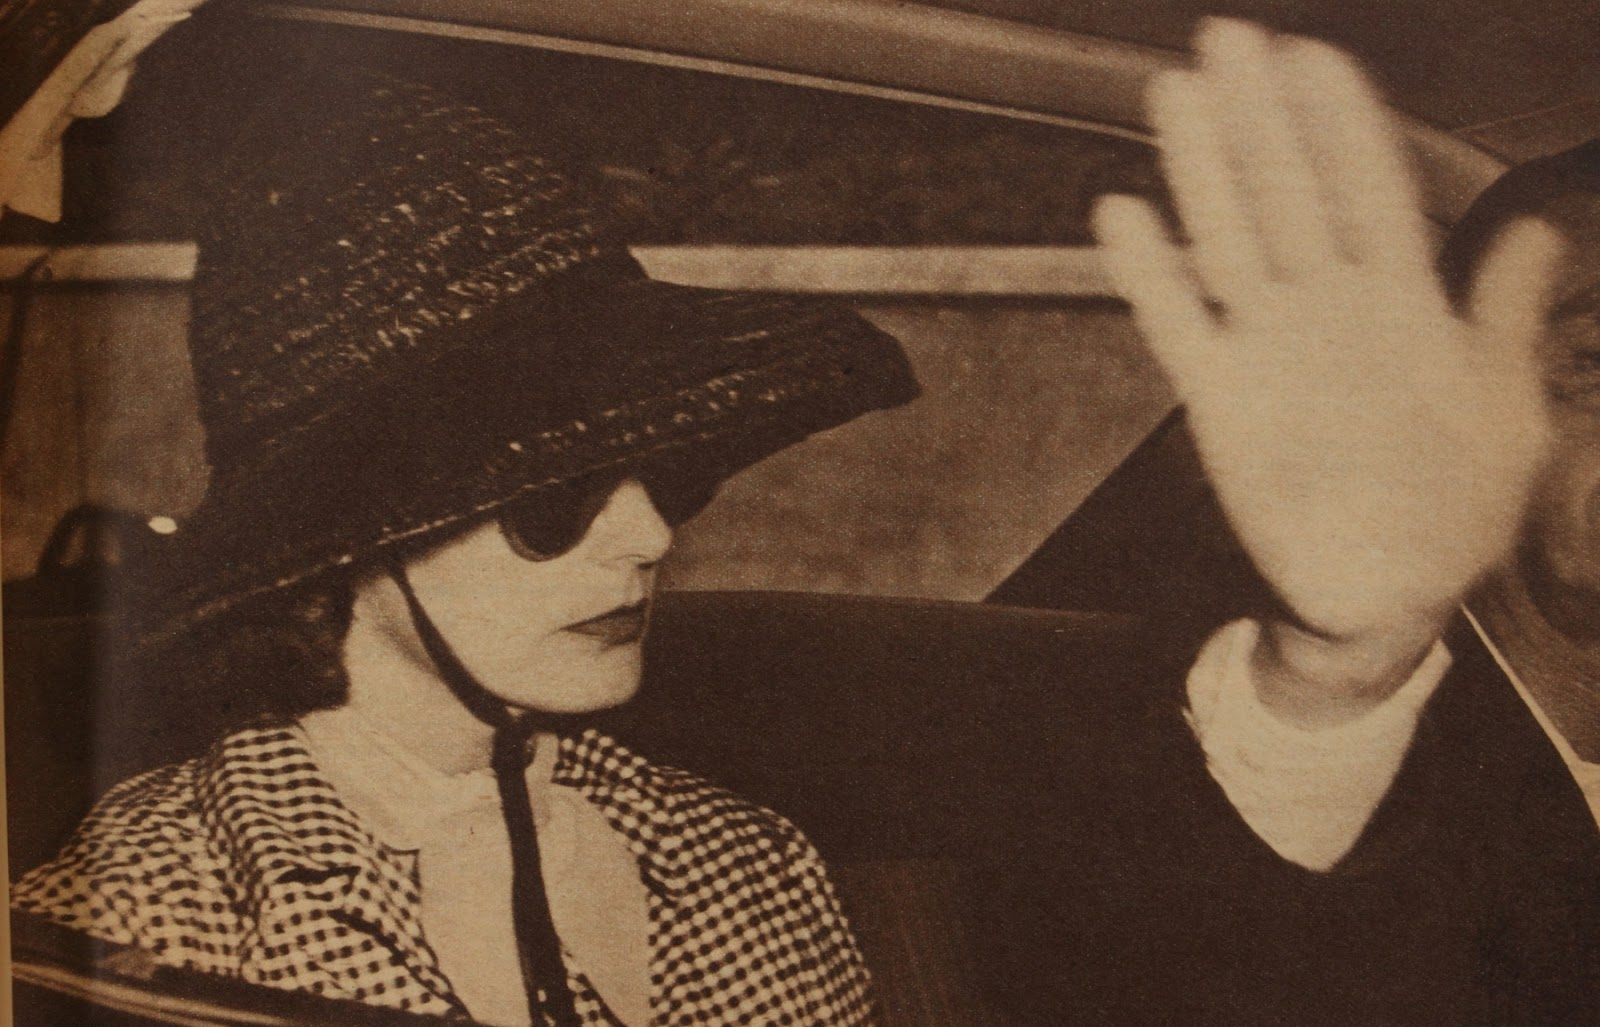 Newspaper clipping of Greta Garbo with Black Hat